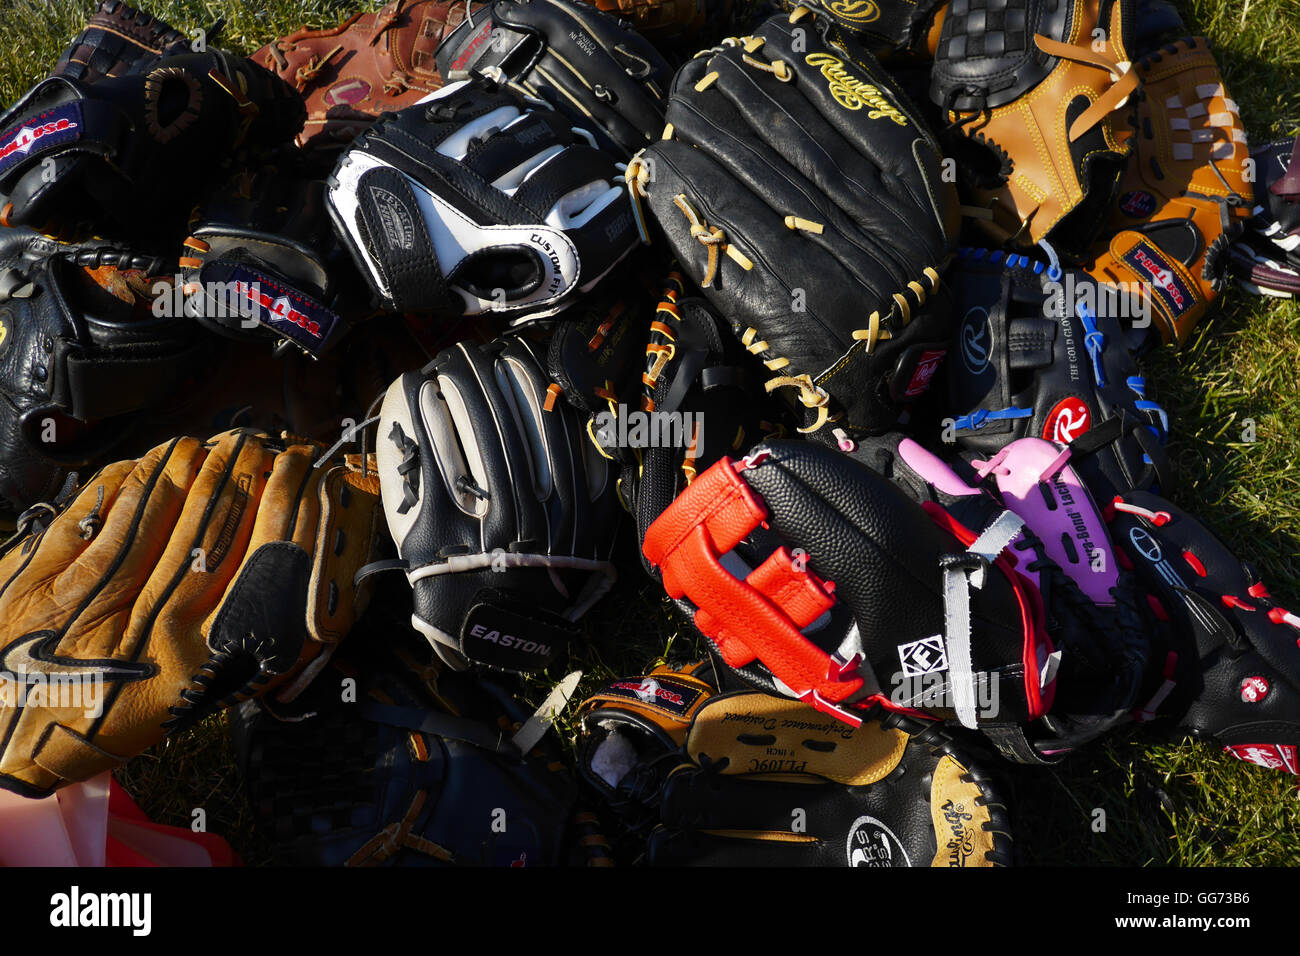 Piles of well-used baseball mitts for kids and adults piled on grass in the sun. - Stock Image